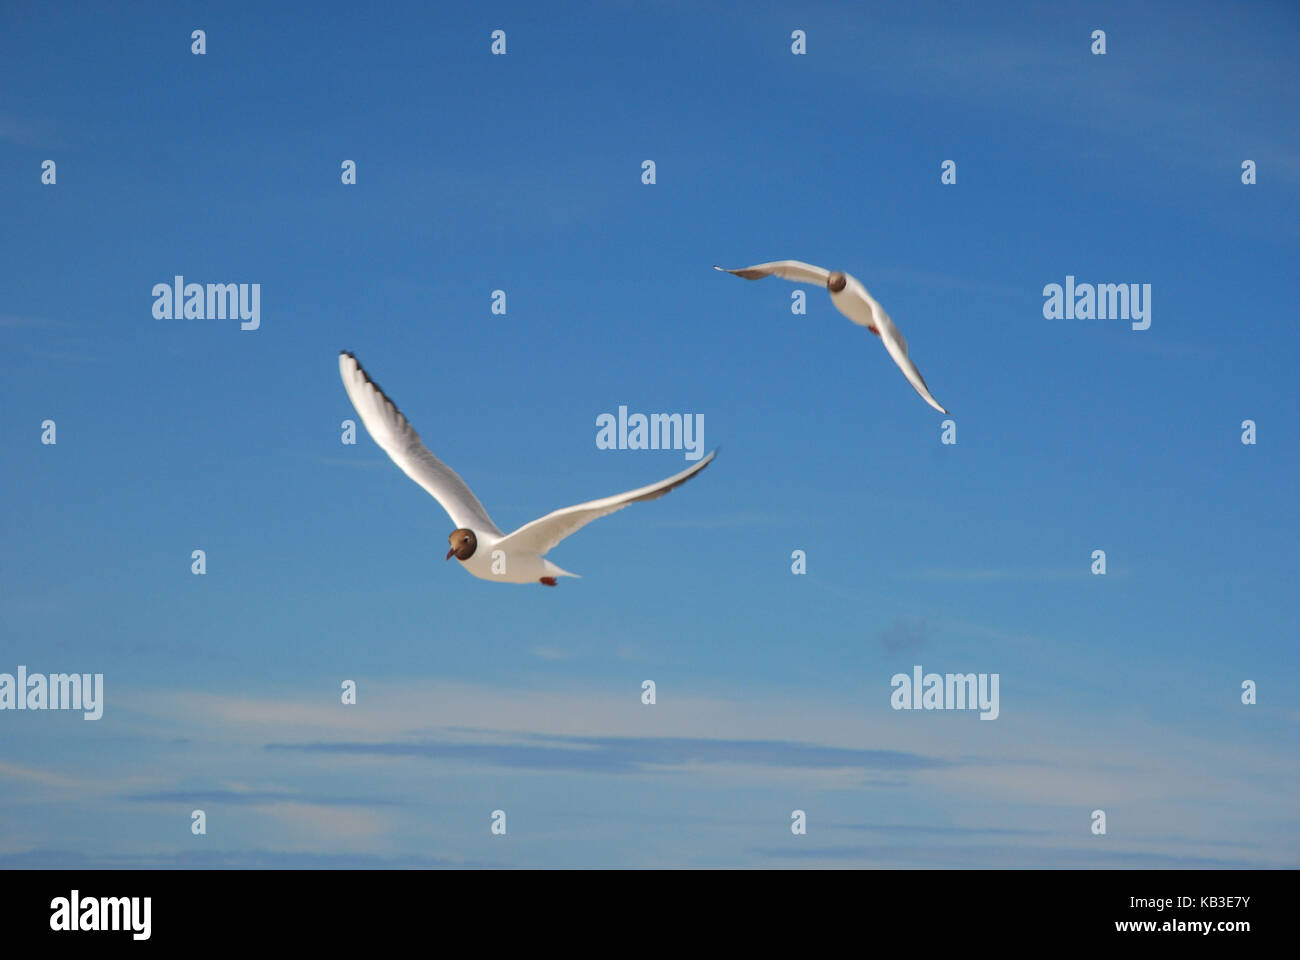 Ornithologie, Sea Bird, black-headed Möwen, Flug Stockbild